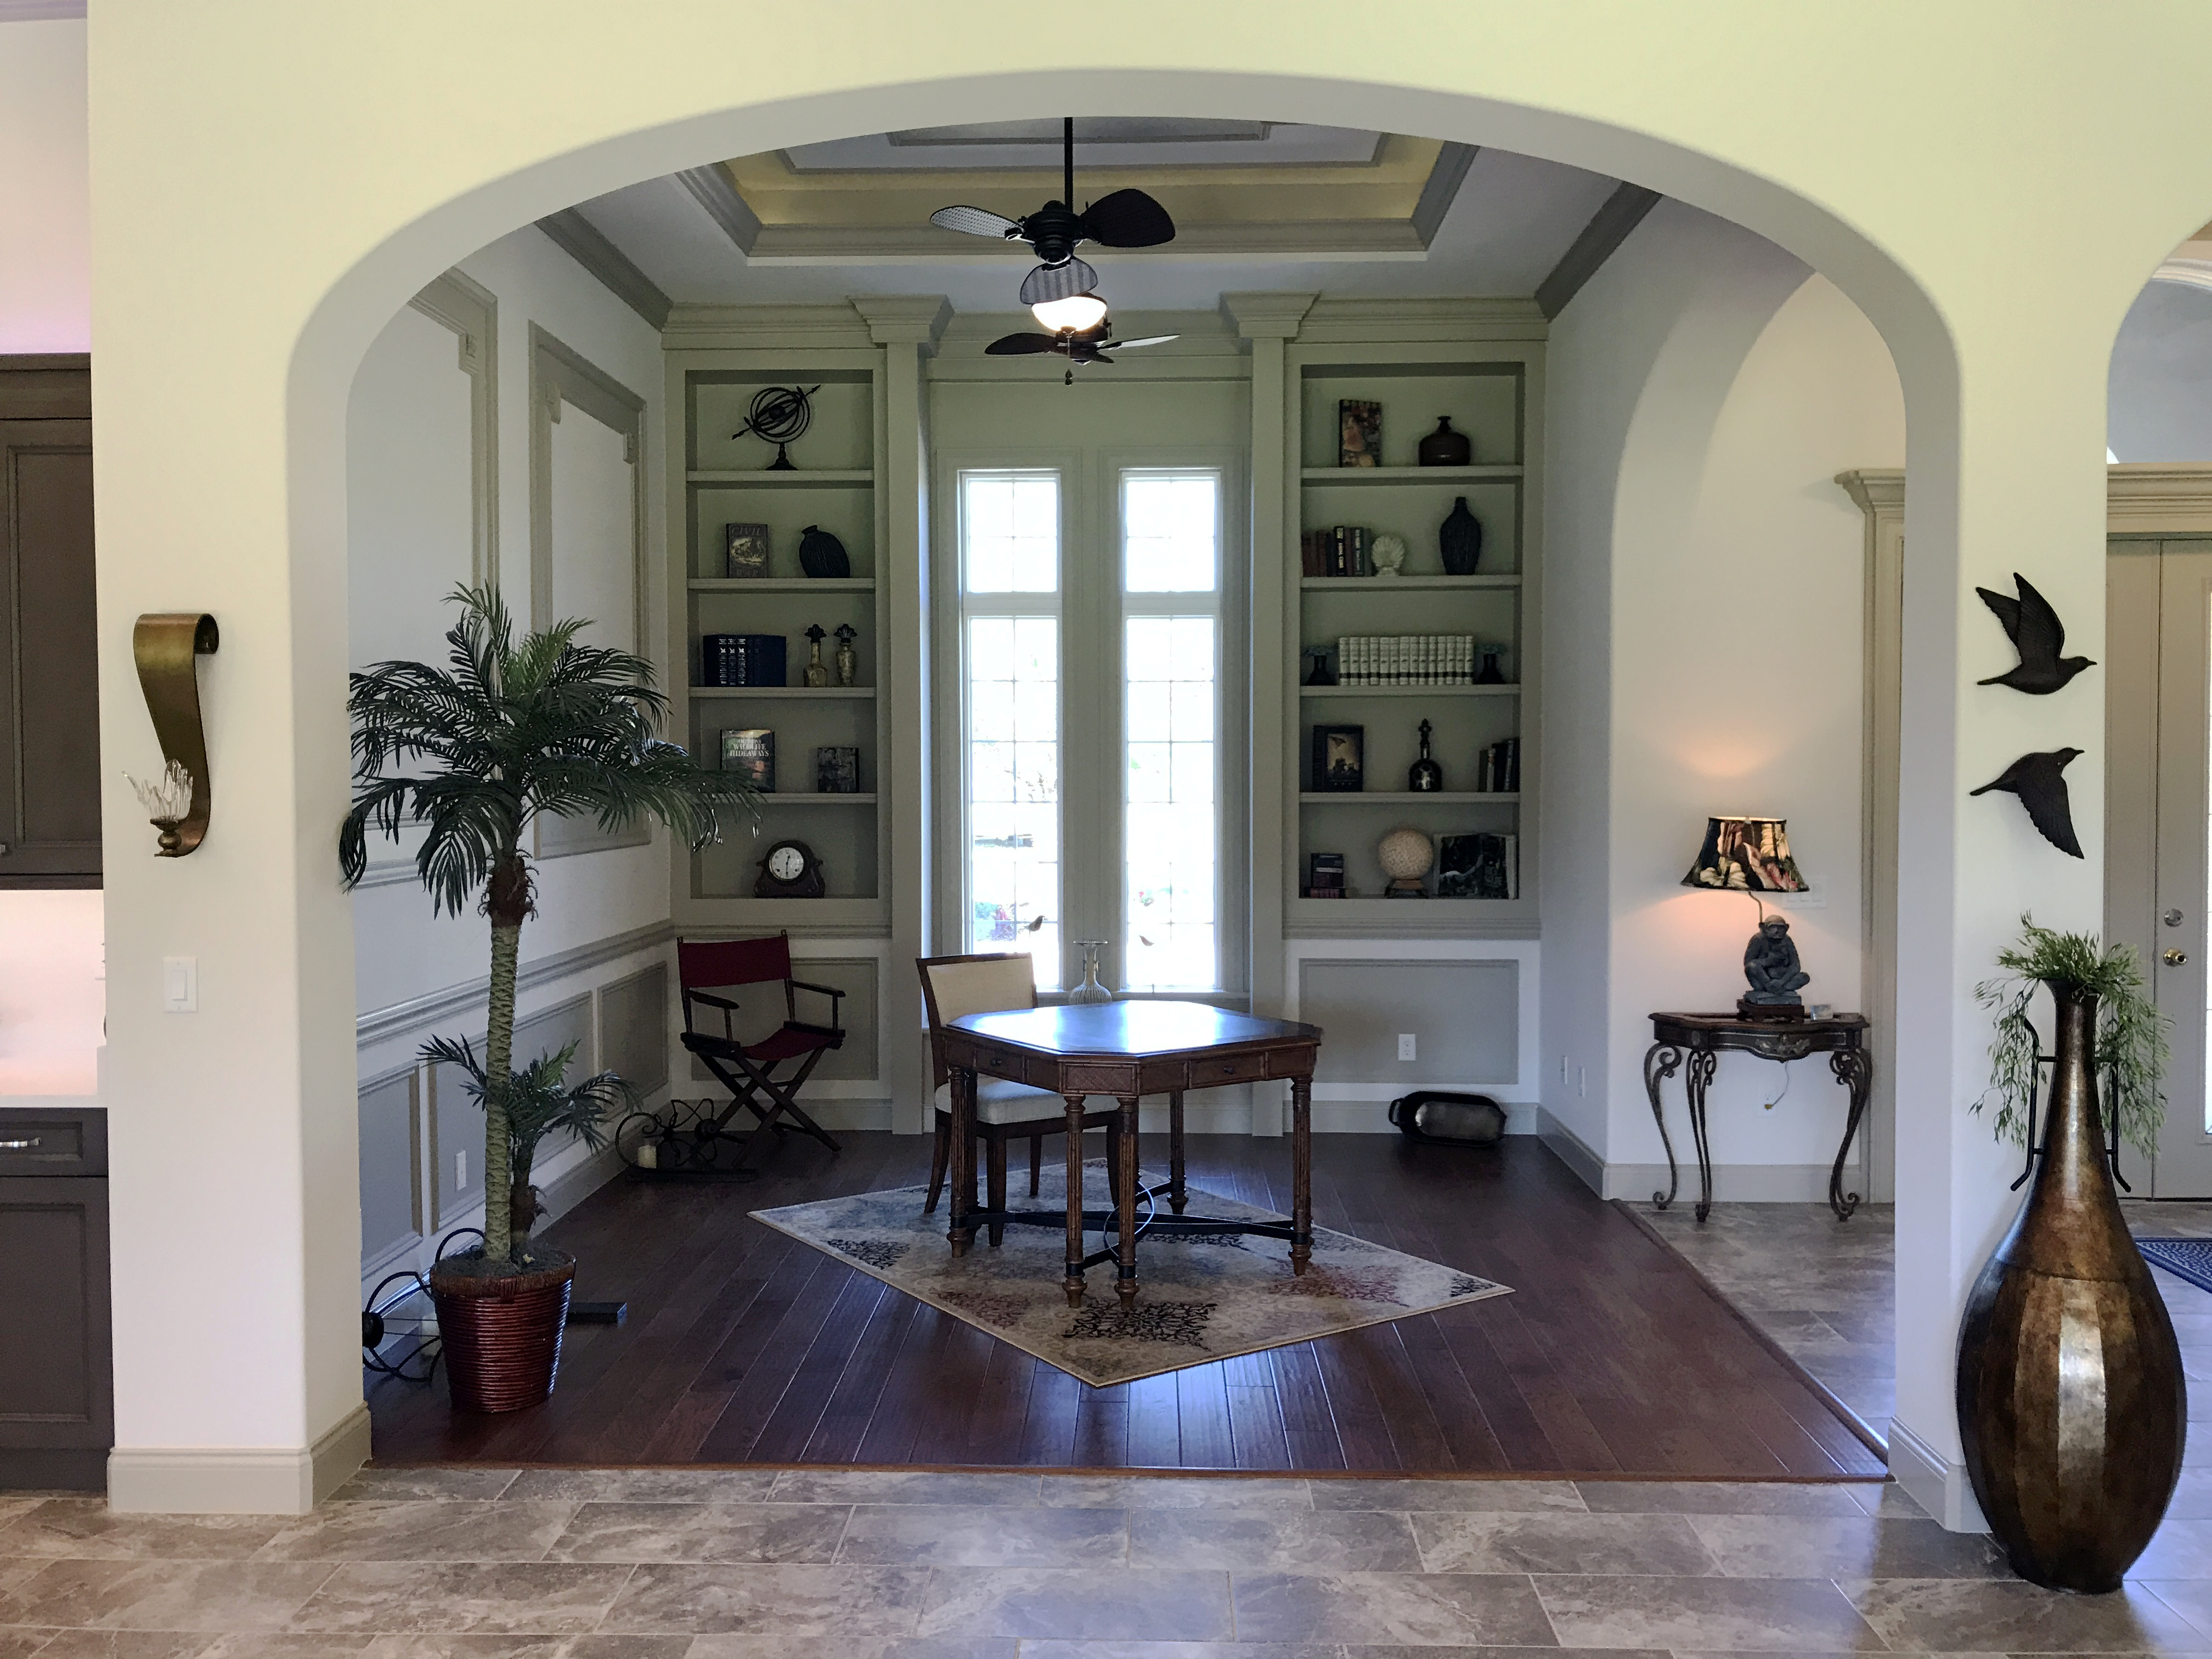 custom arched entry way to study with built in shelving and unique ceiling fan